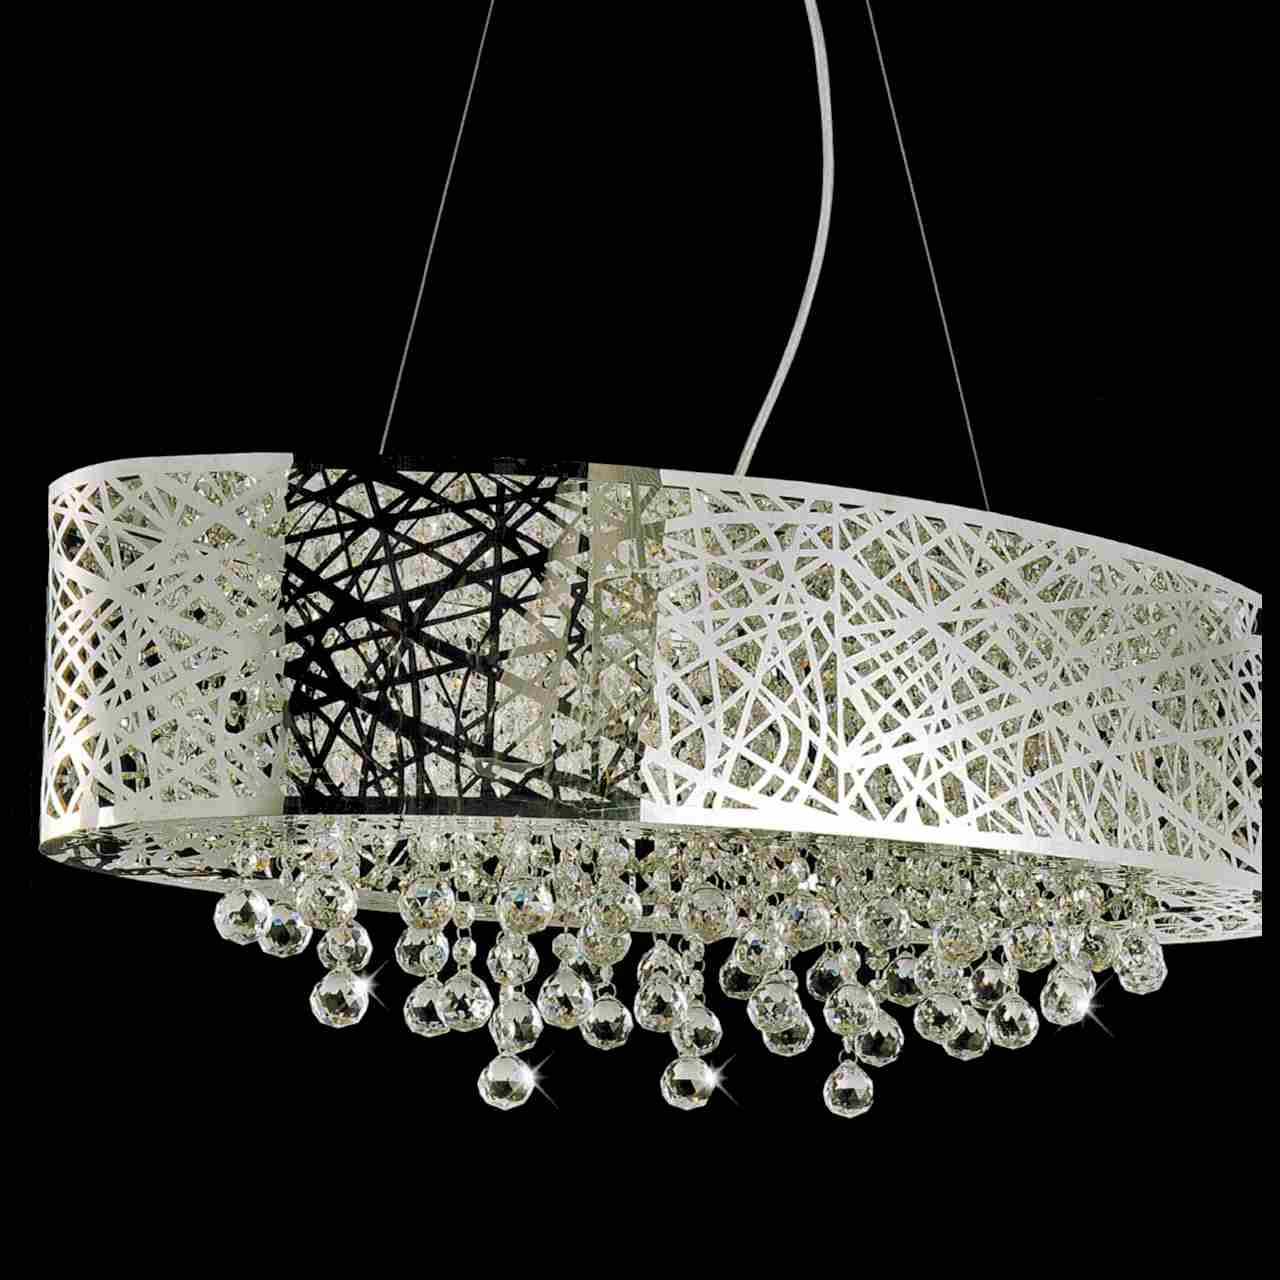 contemporary antique lights crystals crystal chandelier lighting of and finish champagne cr brizzo shade picture organza stores pendant round brass